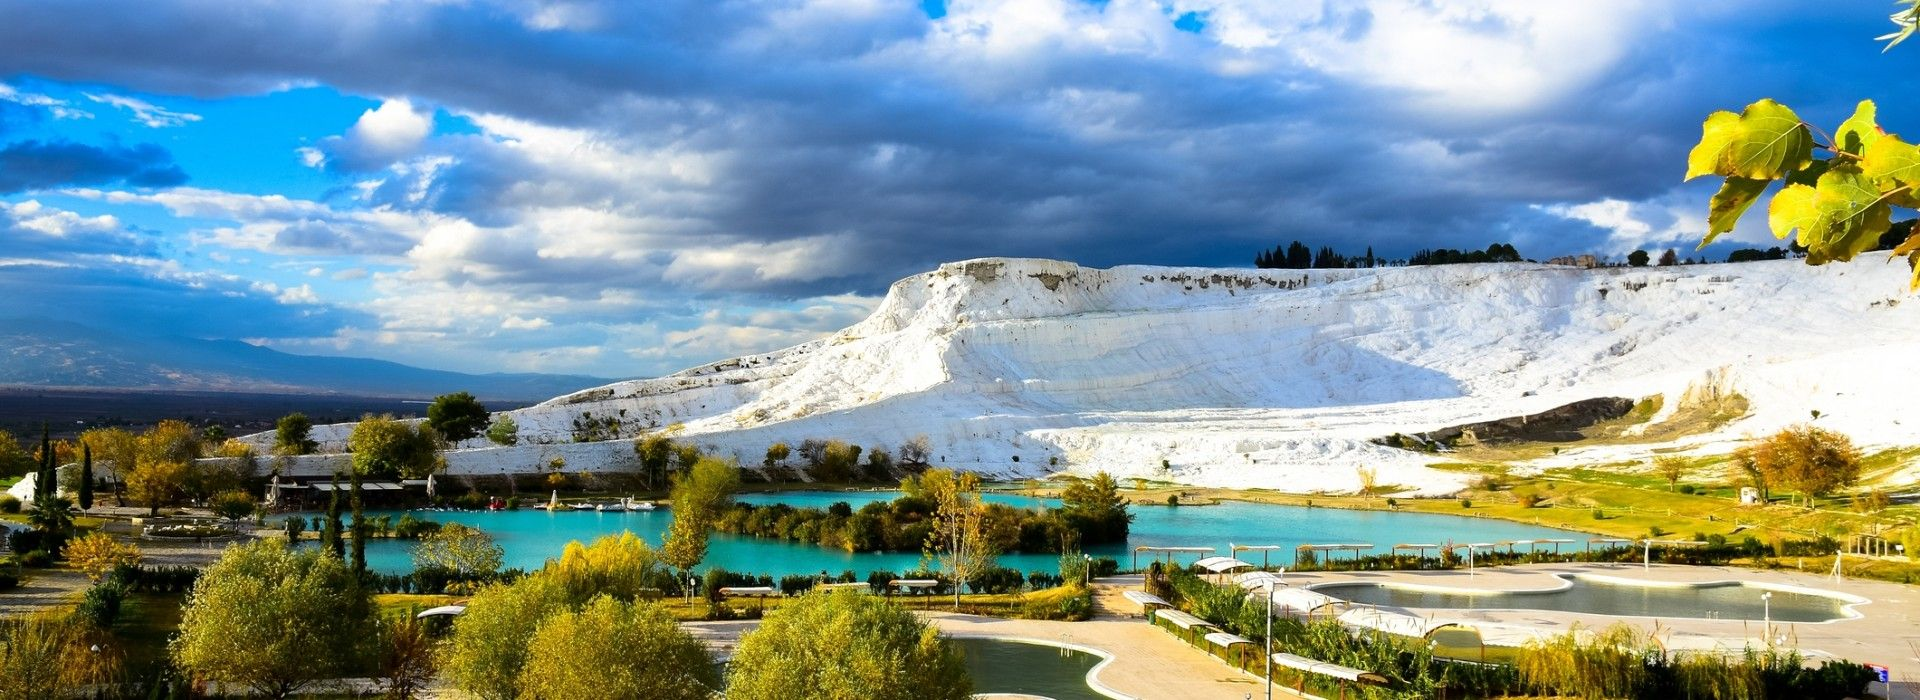 Beach, romance, getaways and relaxation Tours in Turkey